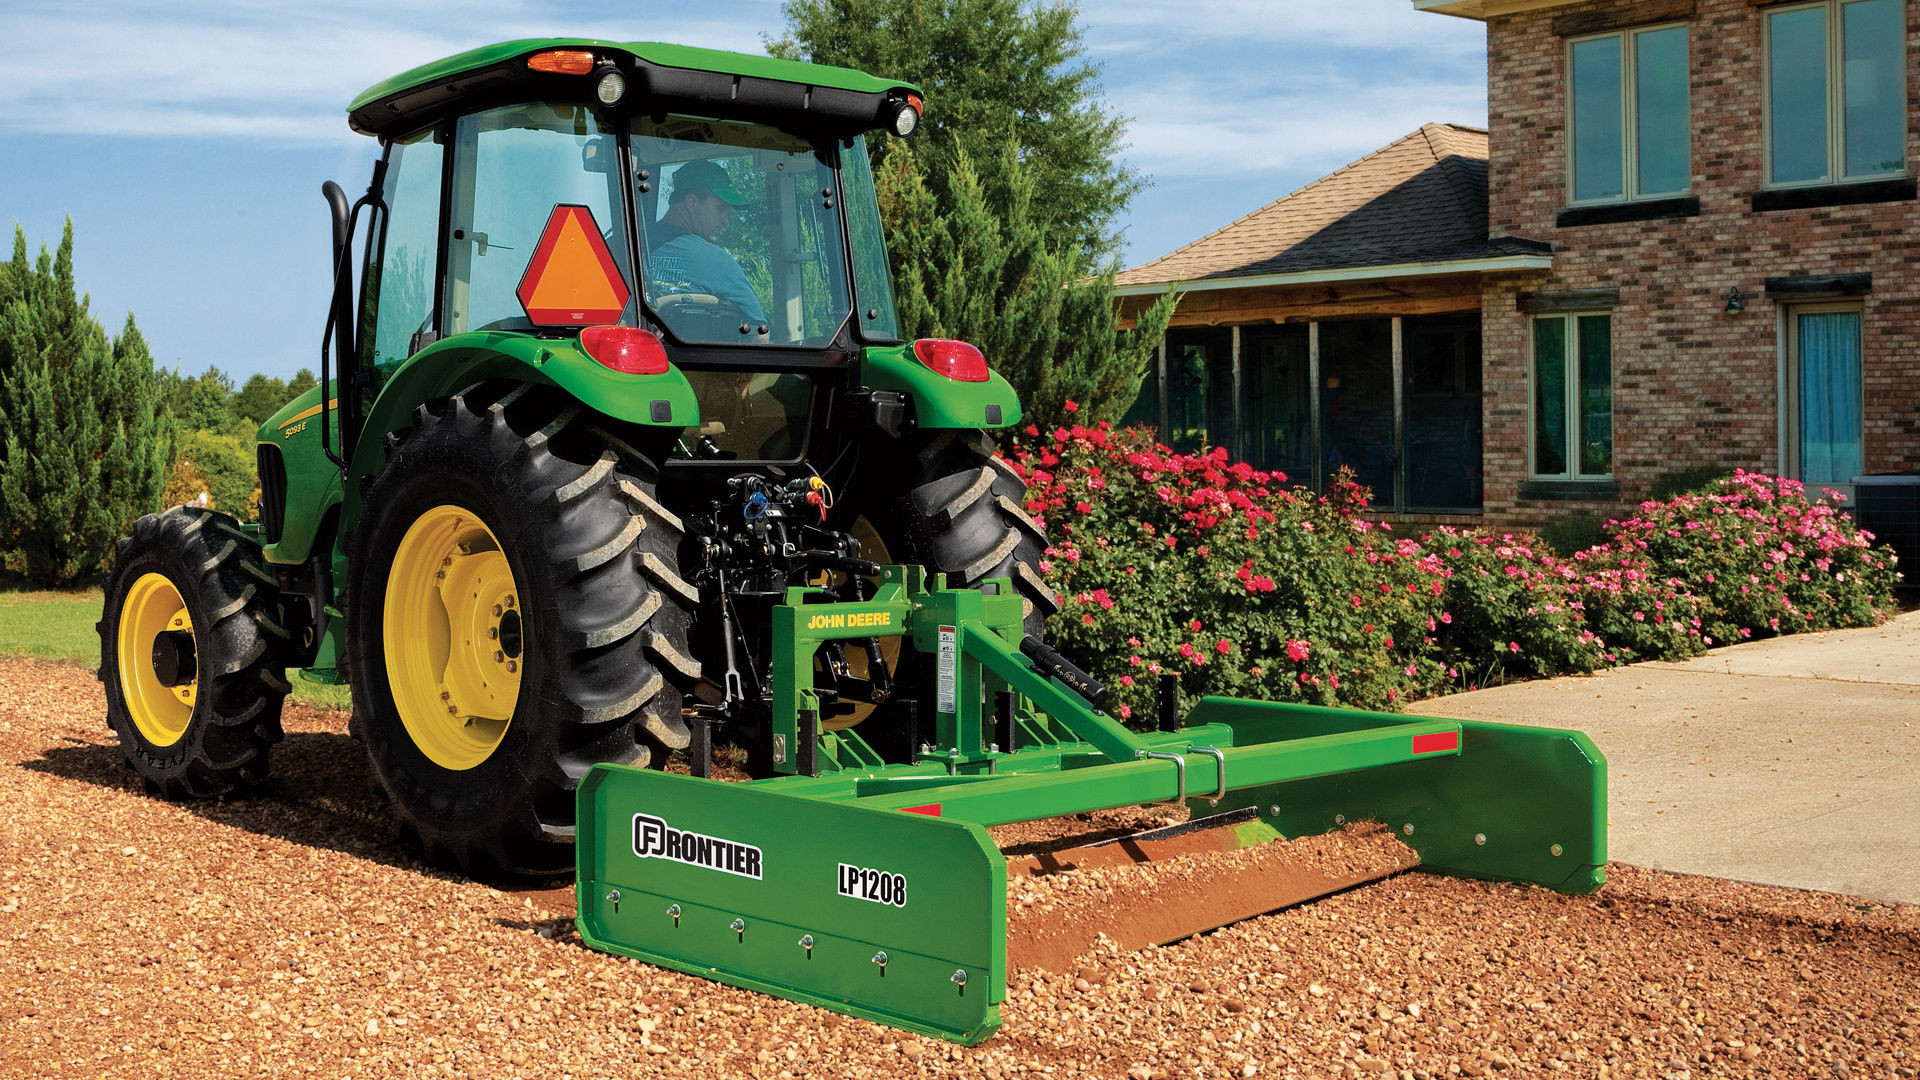 Best ideas about John Deere Landscape Supplies . Save or Pin Frontier Landscaping Equipment Now.